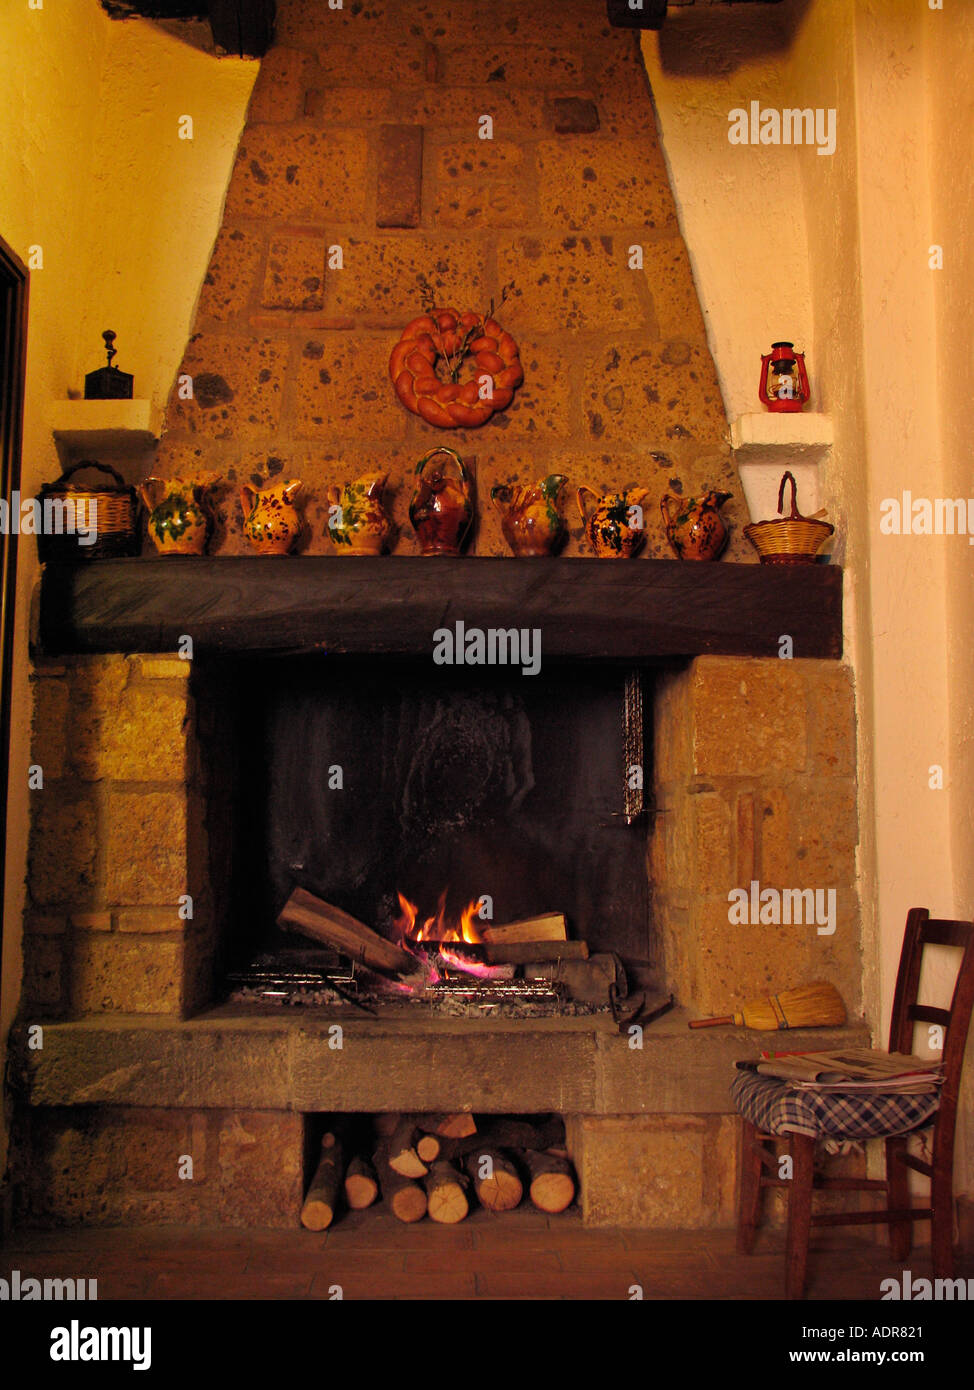 open hearth cooking fire in restaurant in the etruscan hilltown of